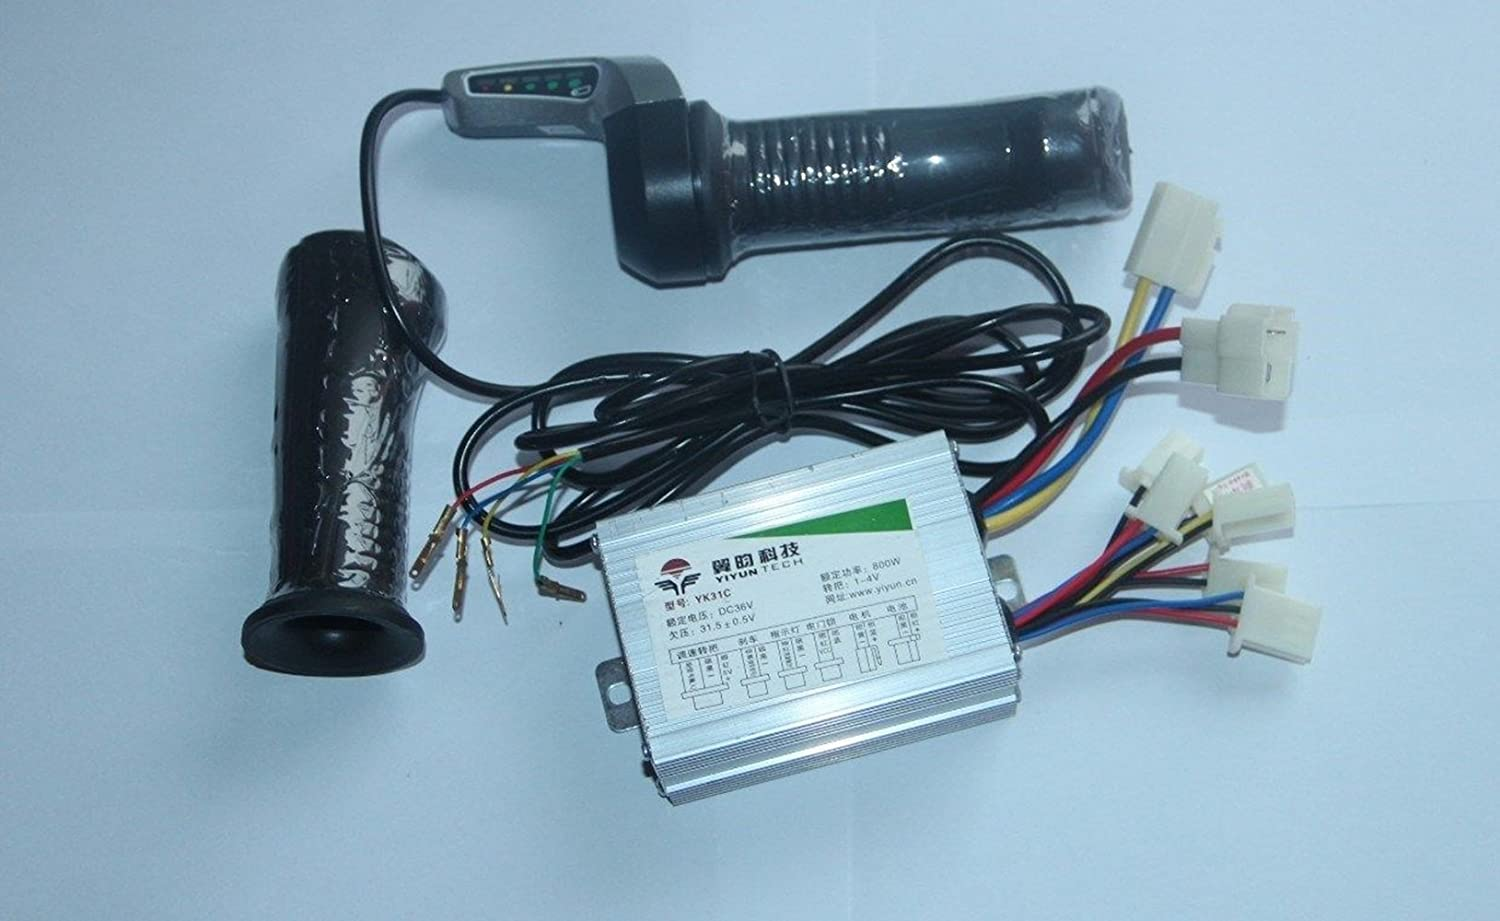 Amazon.com : Scooter 36V 800W Motor Brushed Speed Controller ...